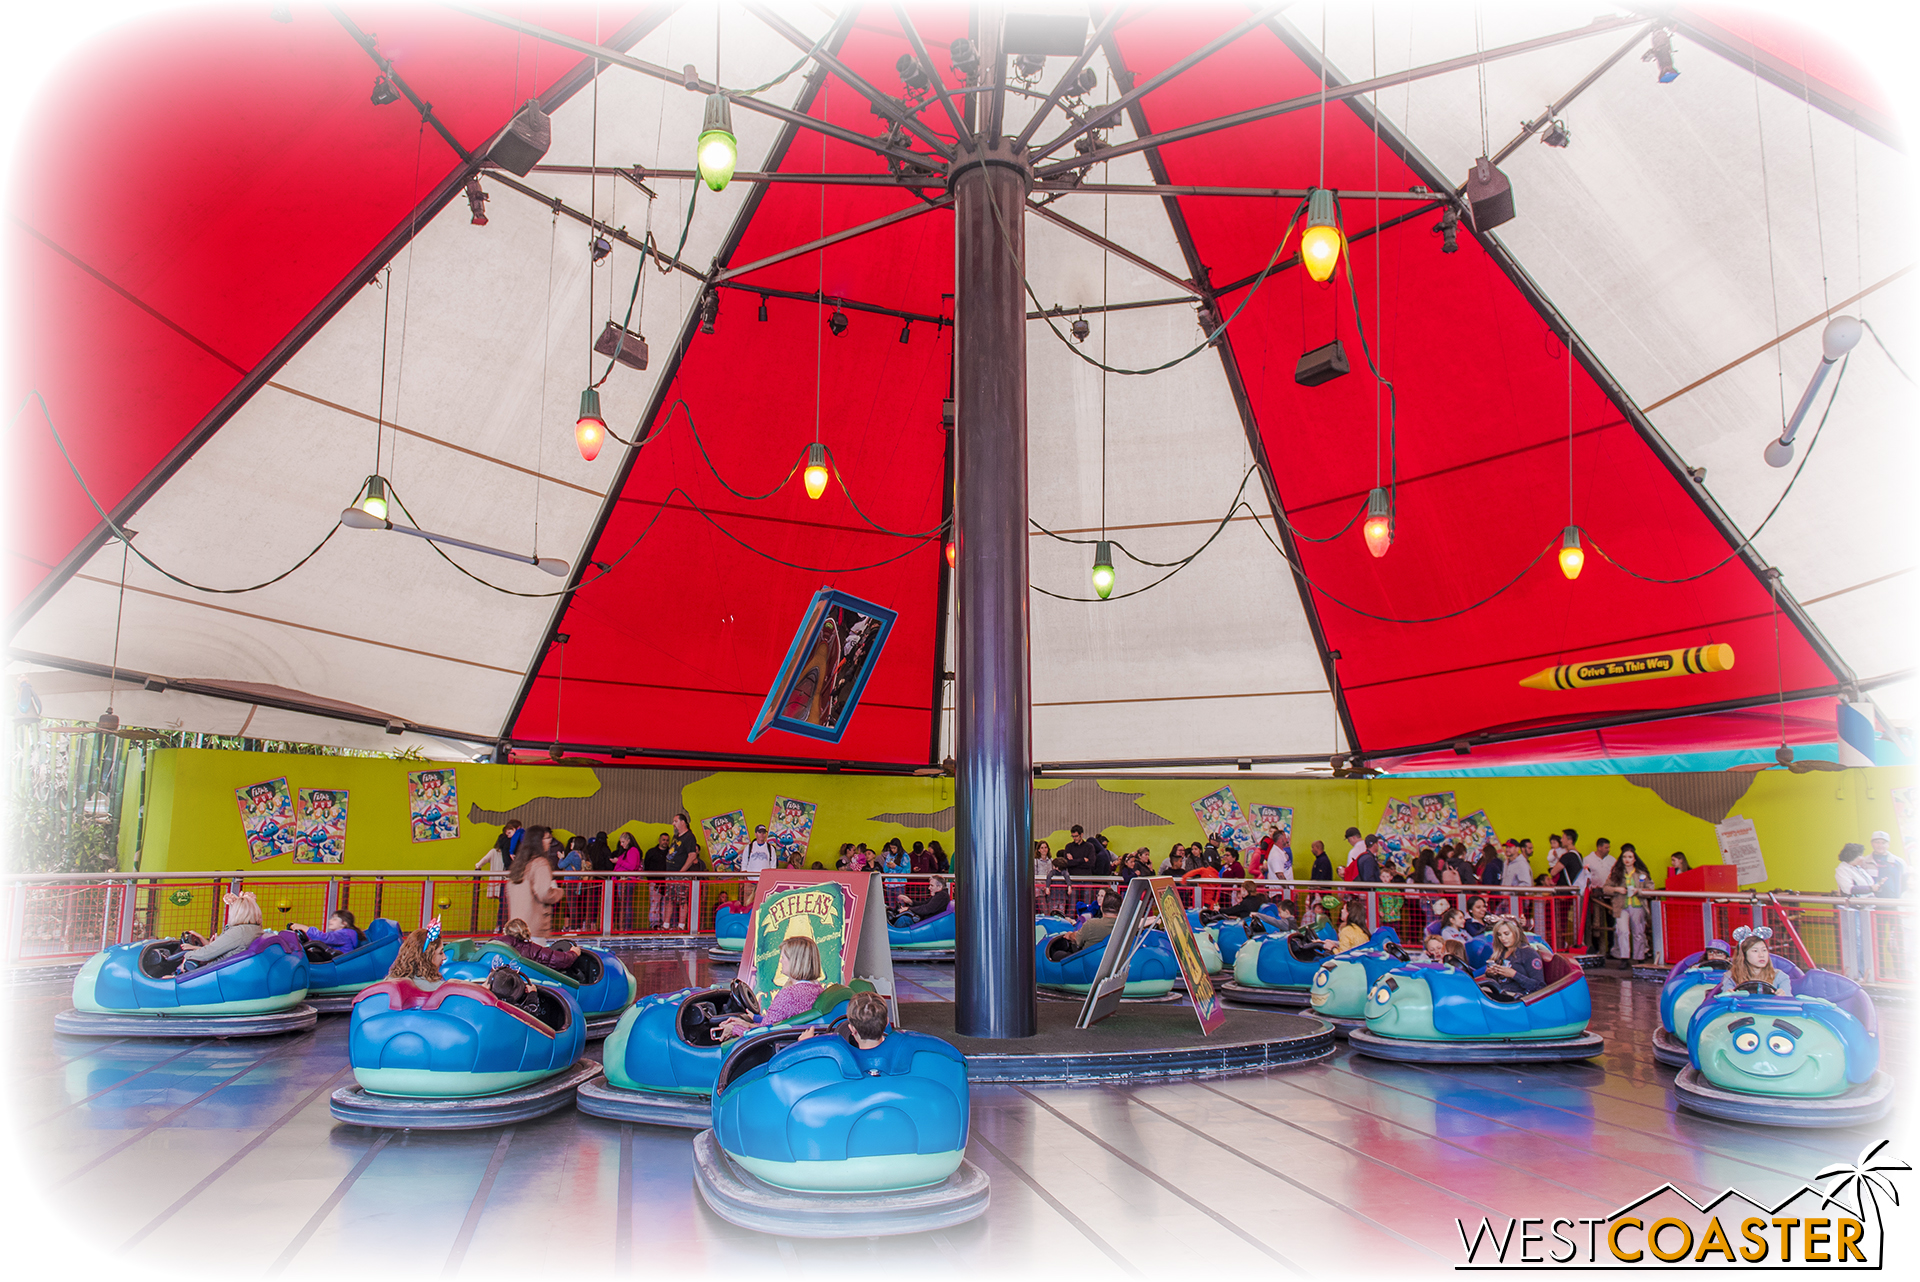 Farewell, extremely tame bumper cars...